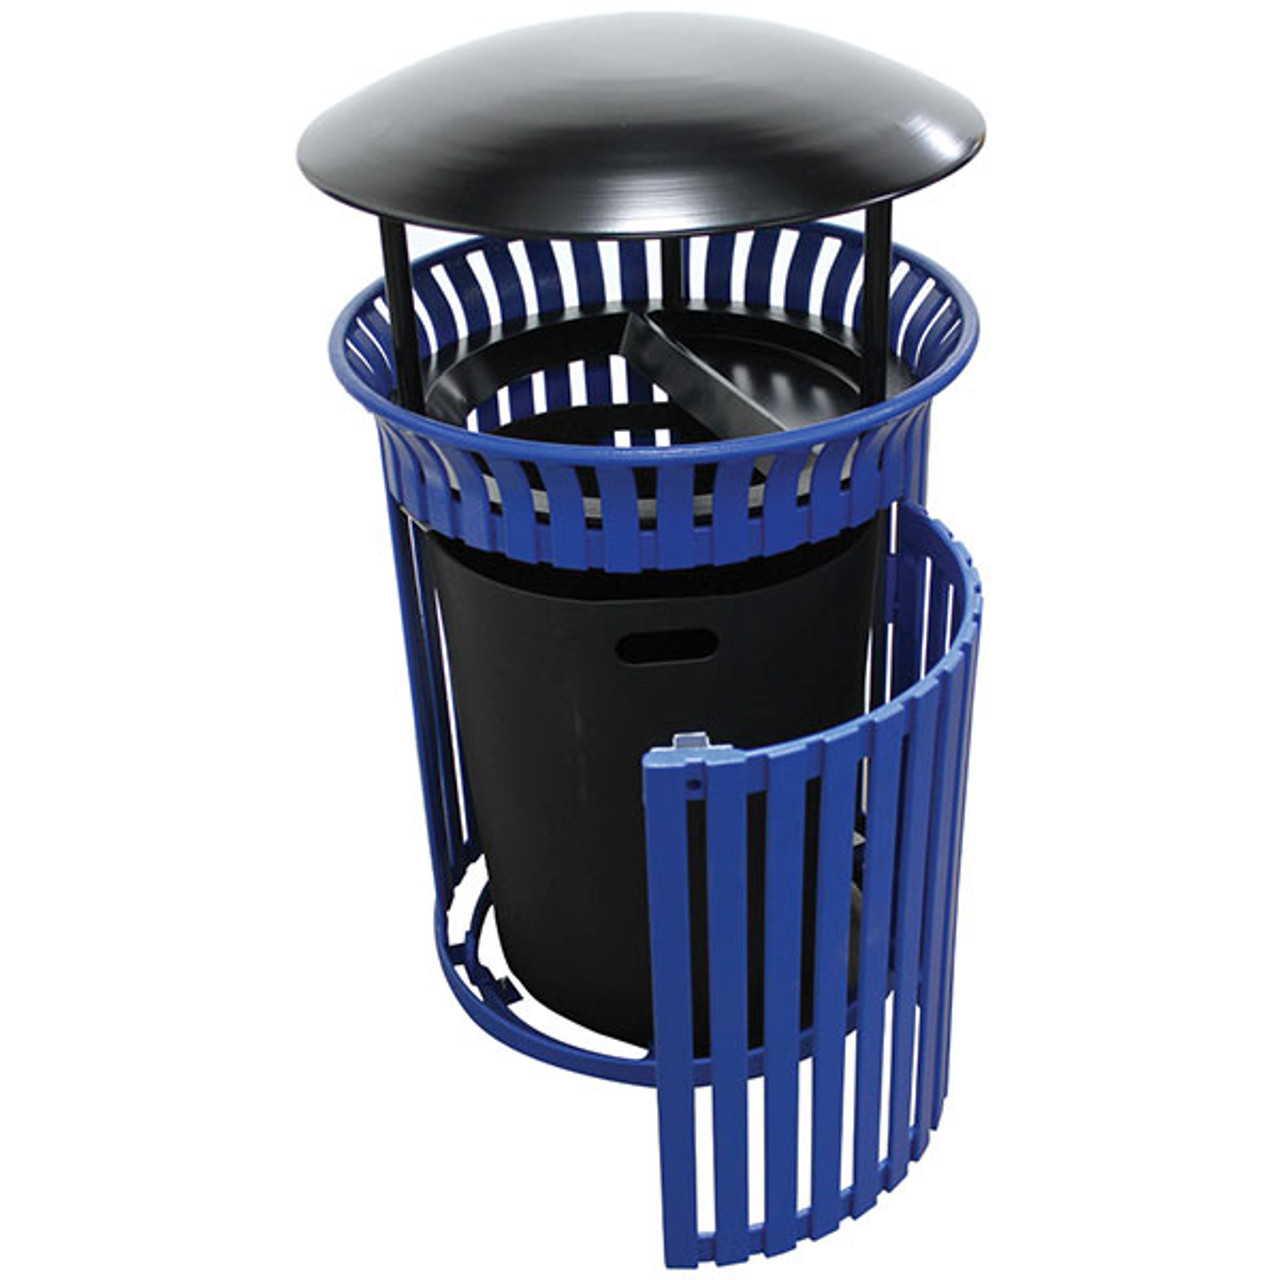 25 Gallon Outdoor Covered Waste Receptacle with Side Door MF3214